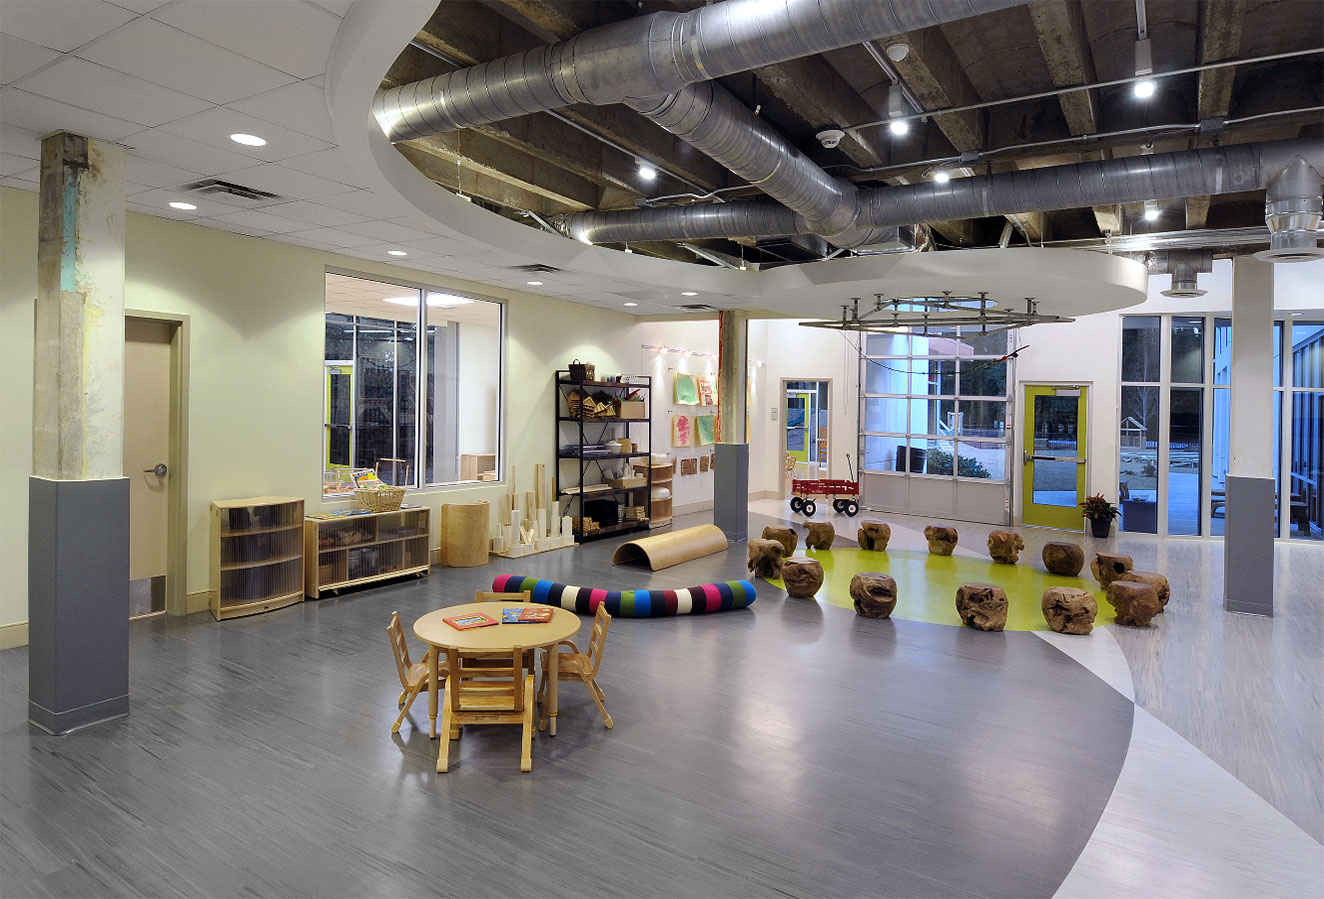 Indoor Learning Environment